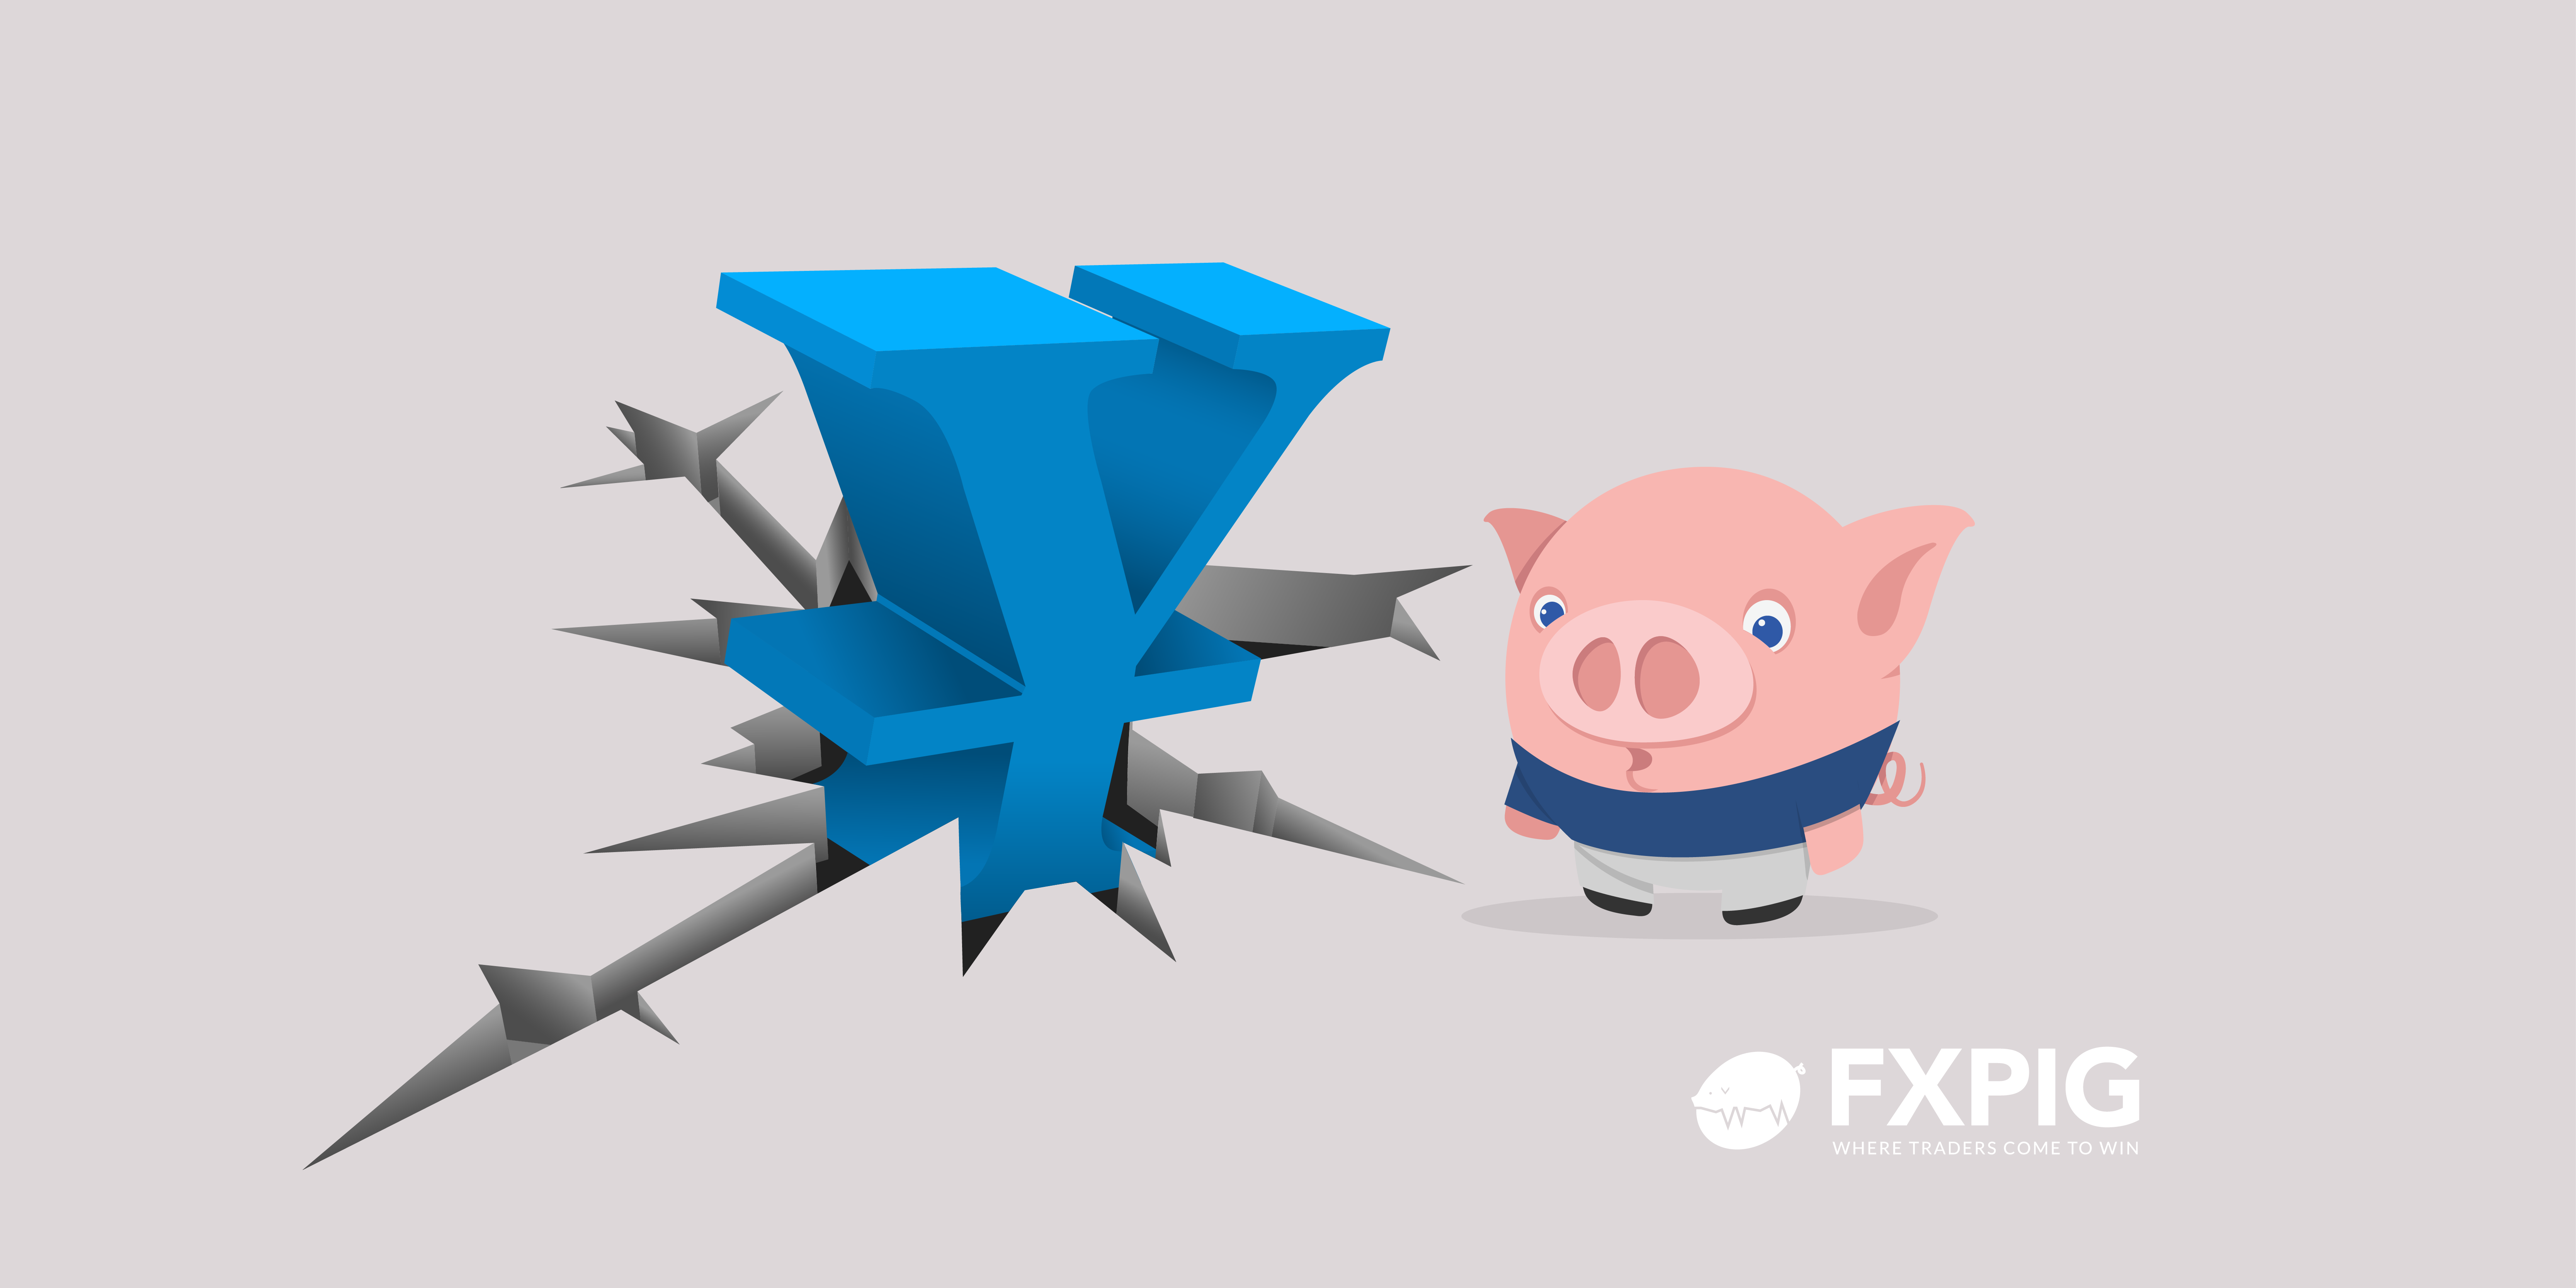 JPY_features_Forex_FXPIG